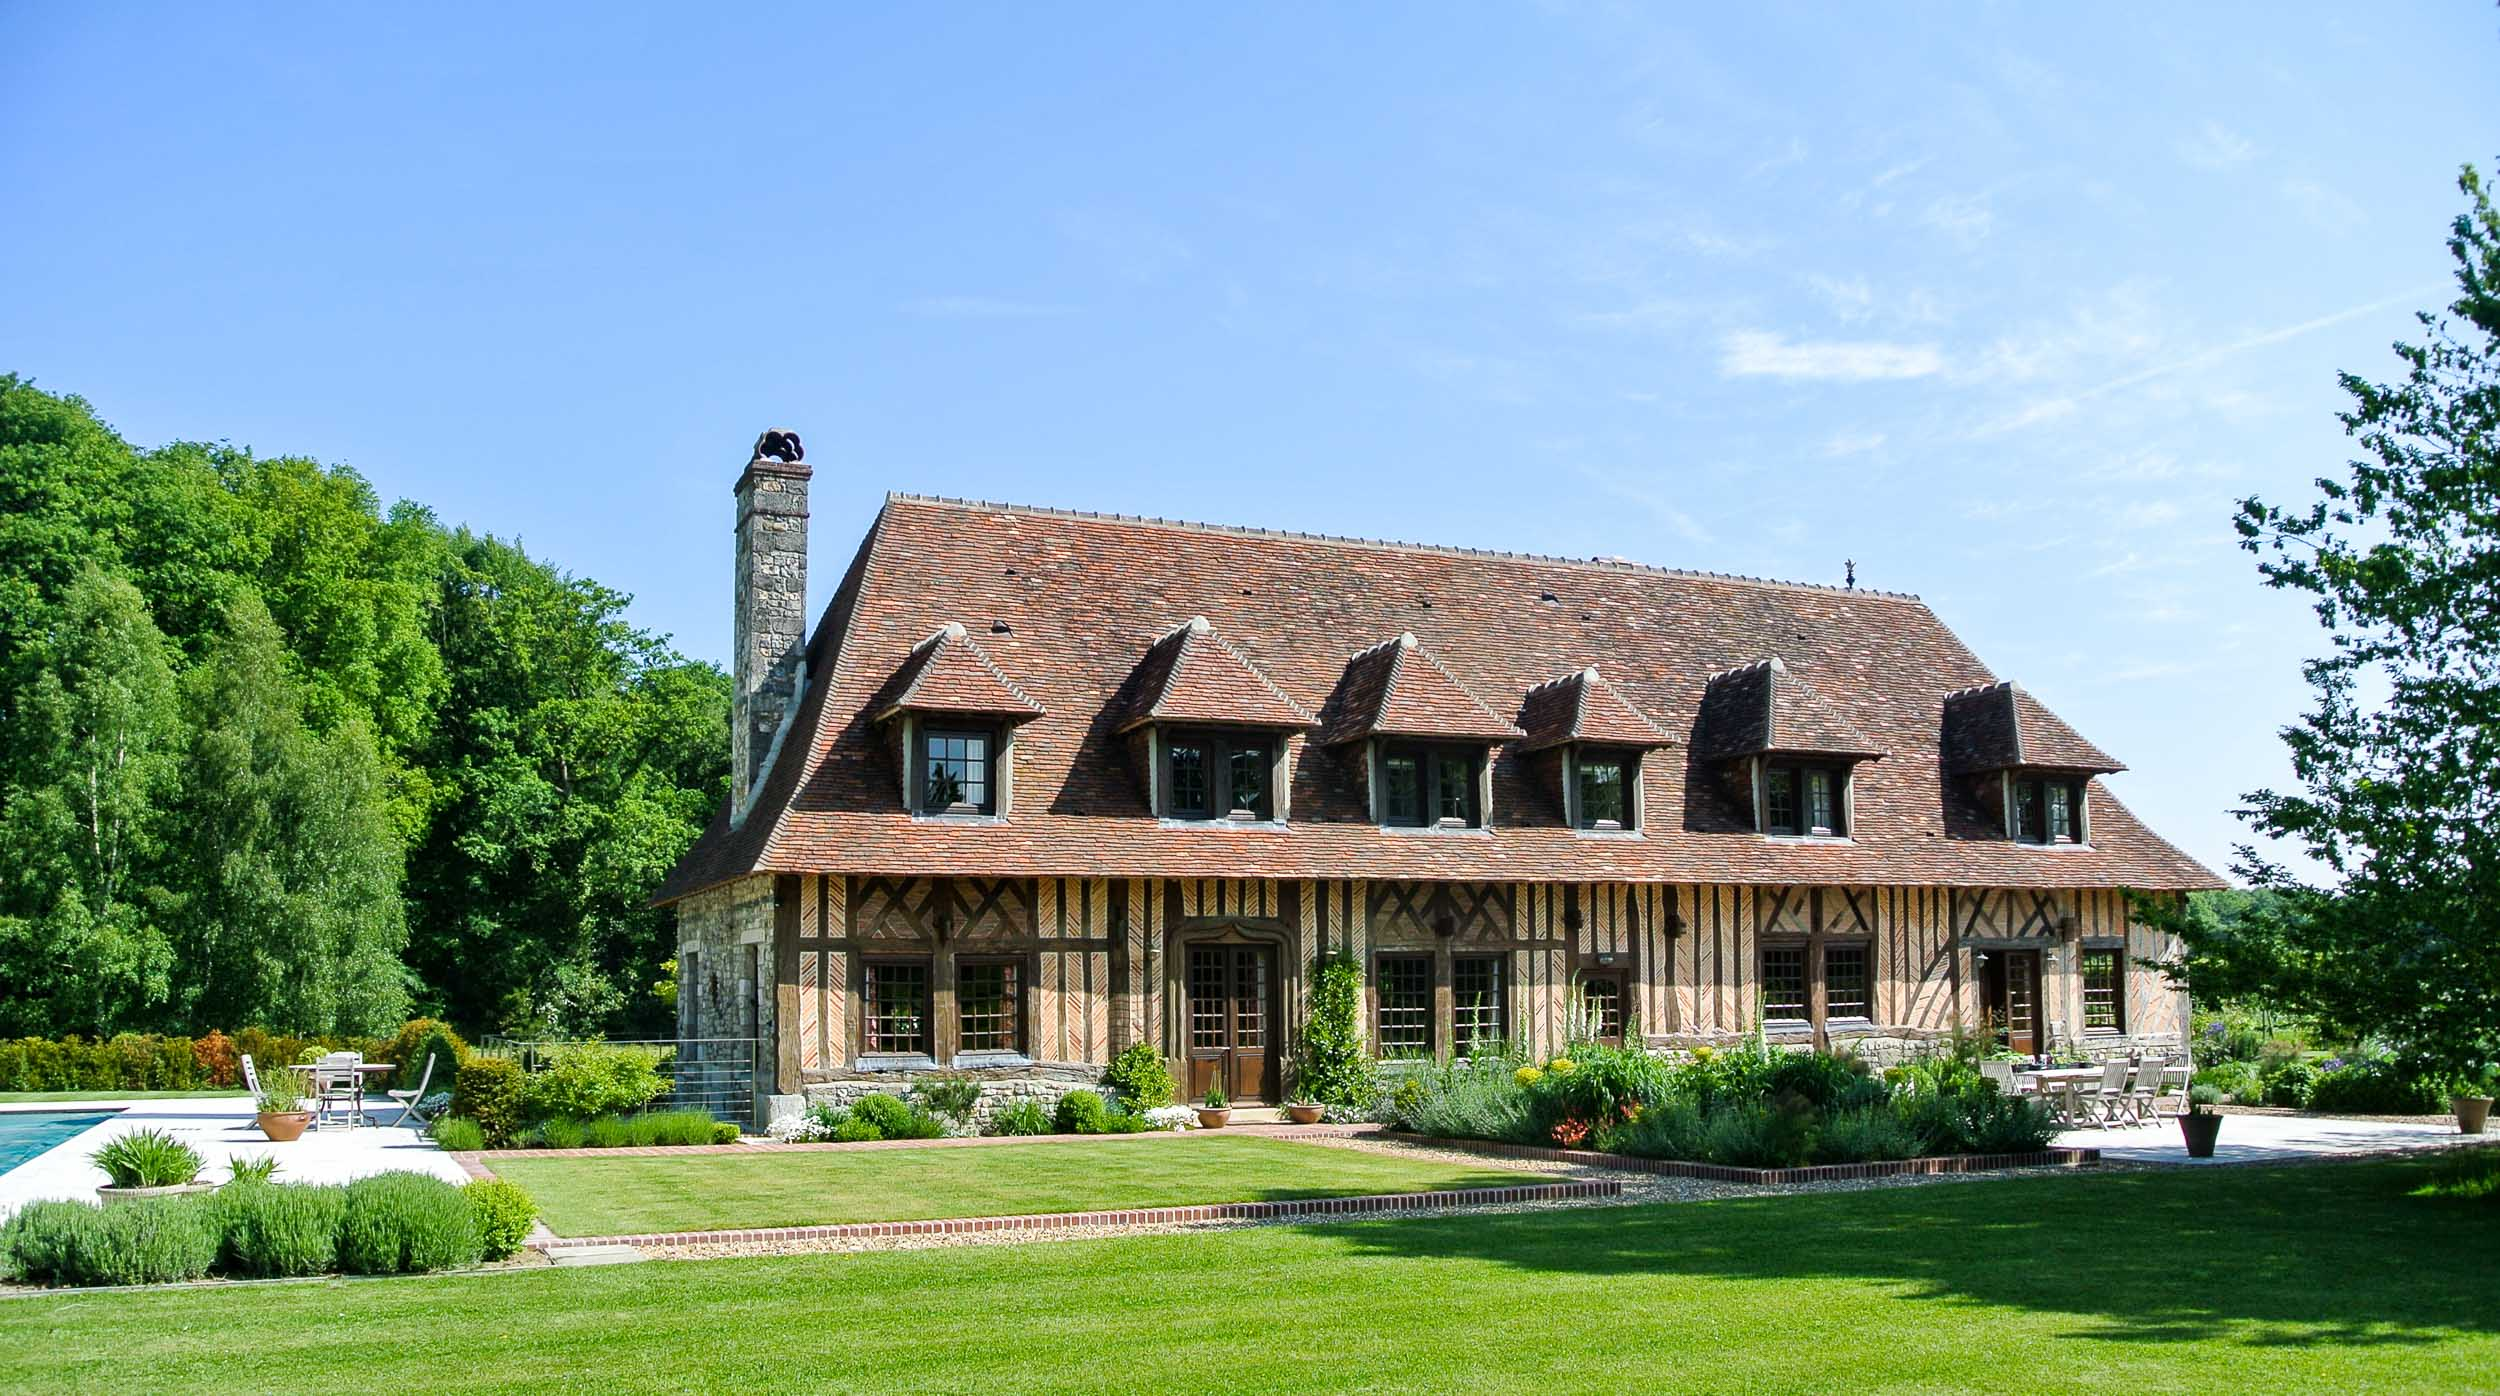 This stunning French farmhouse sits amongst immaculate gardens in Normandy. A sympathetic extension was added by creating a basement and additional tower to the rear of the property,